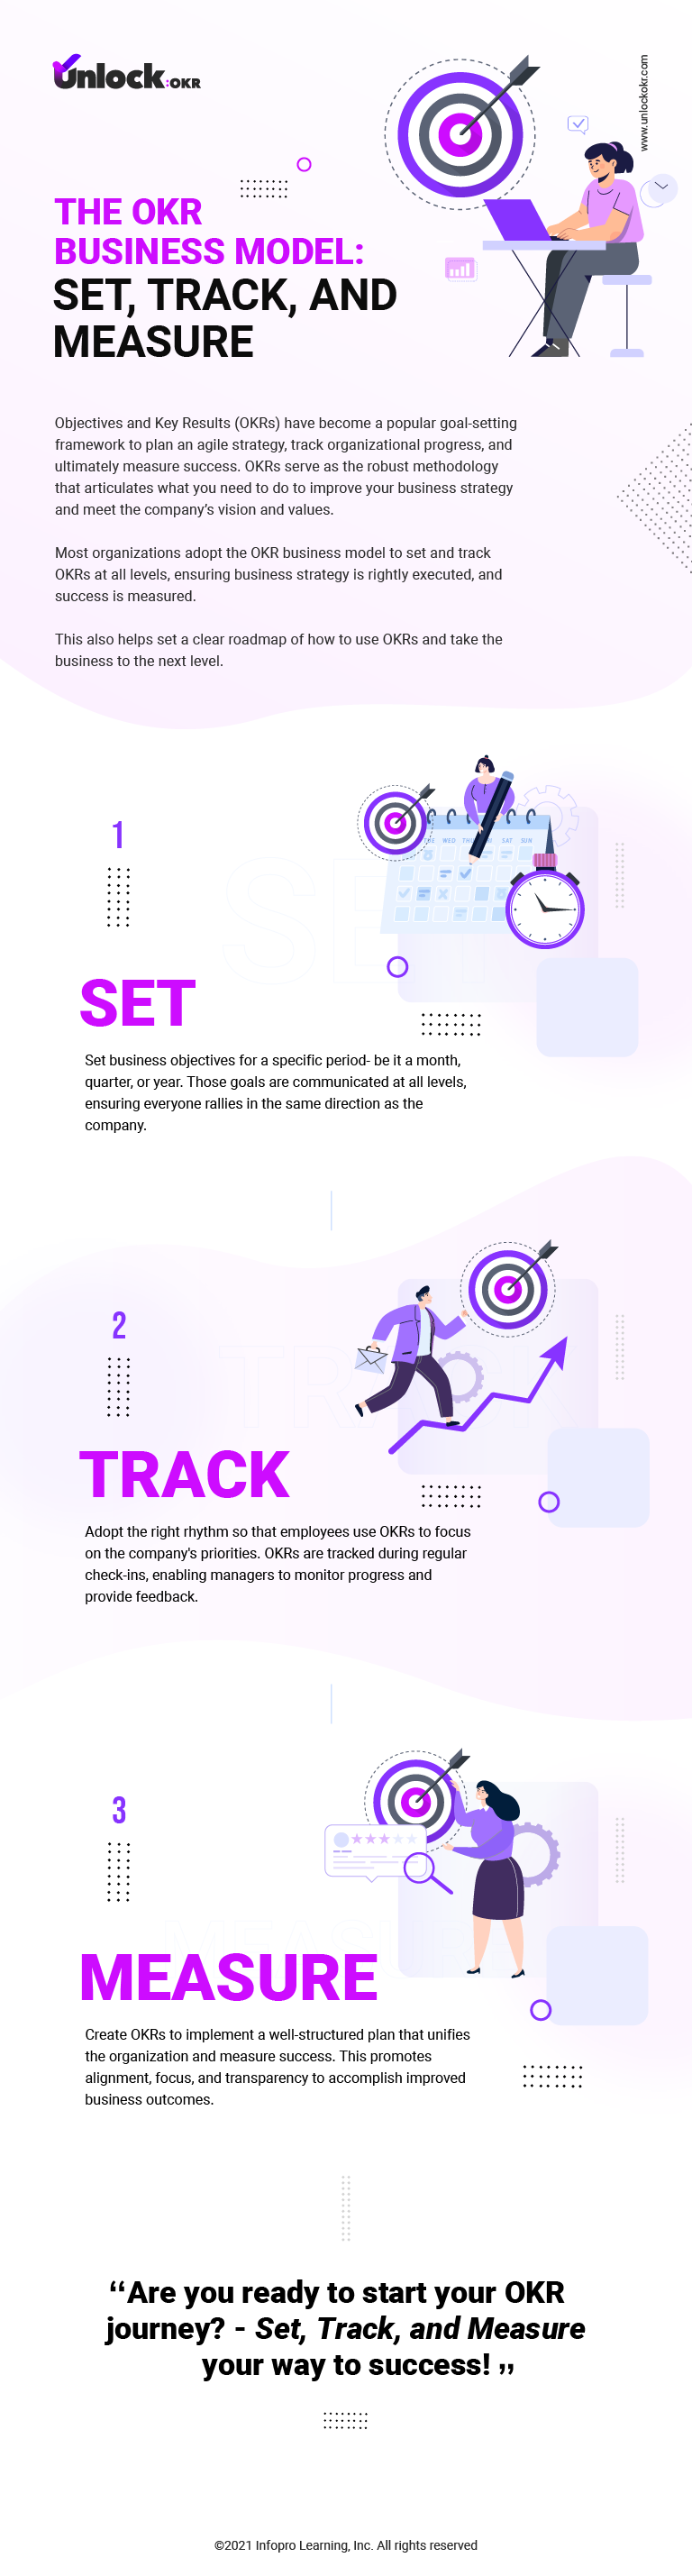 The-OKR-Business-Model_Set-Track-and-Measure